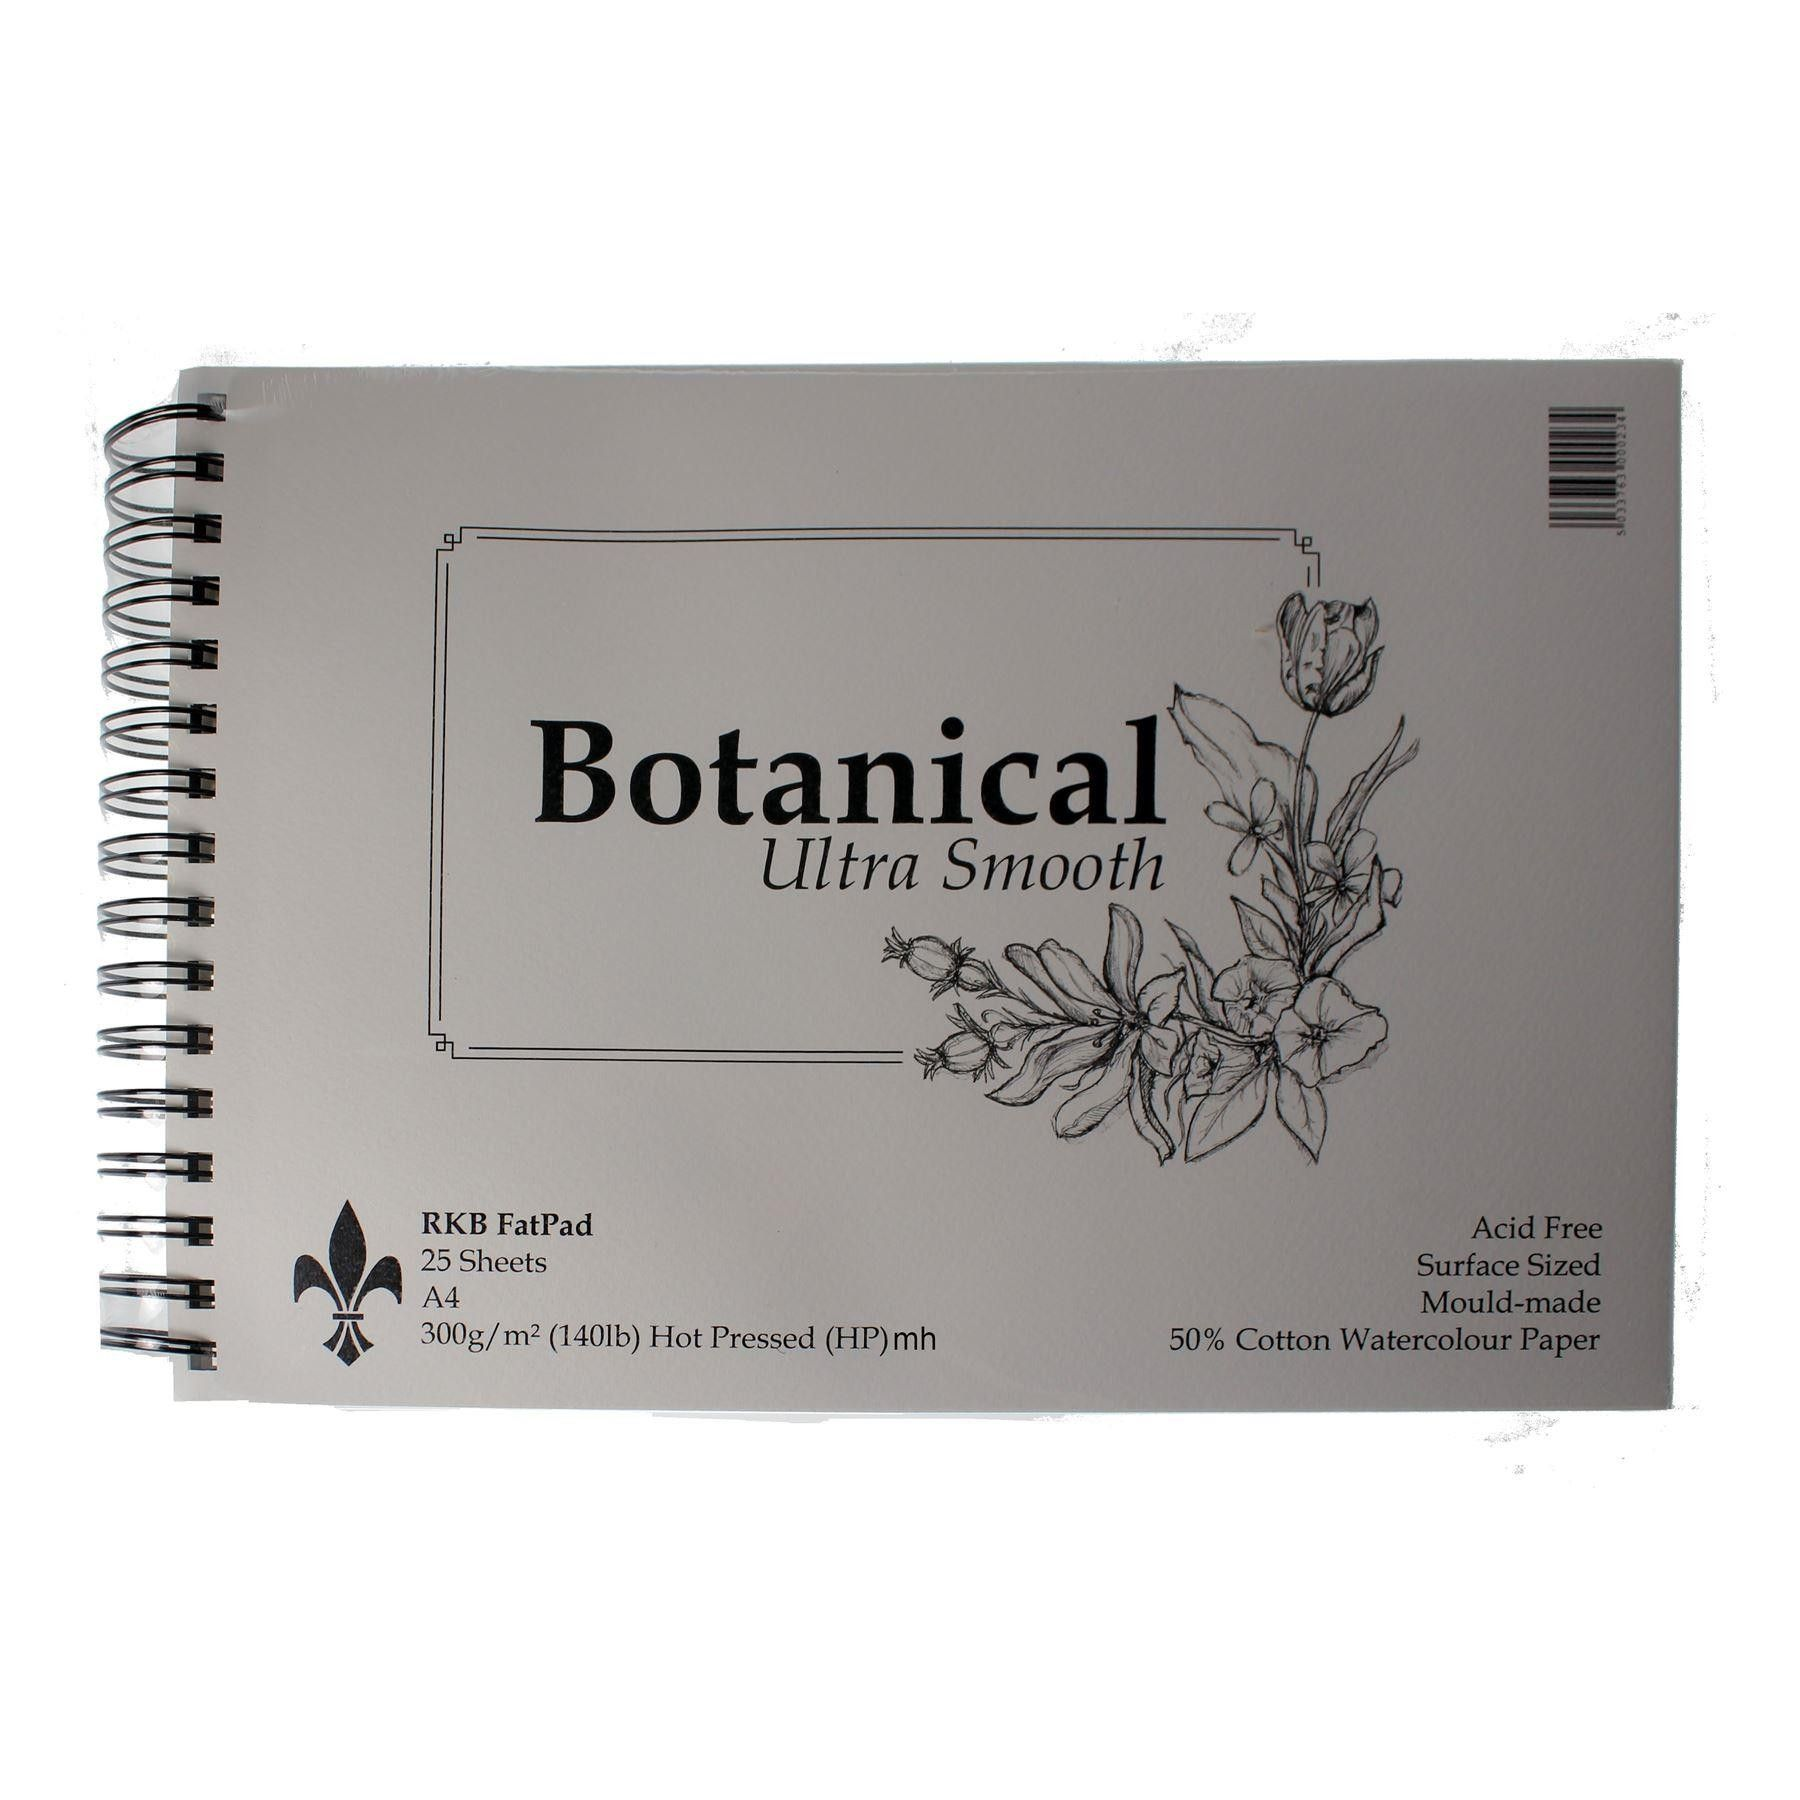 Rkb Botanical Ultra Smooth 50 Cotton Watercolour Paper Pads In